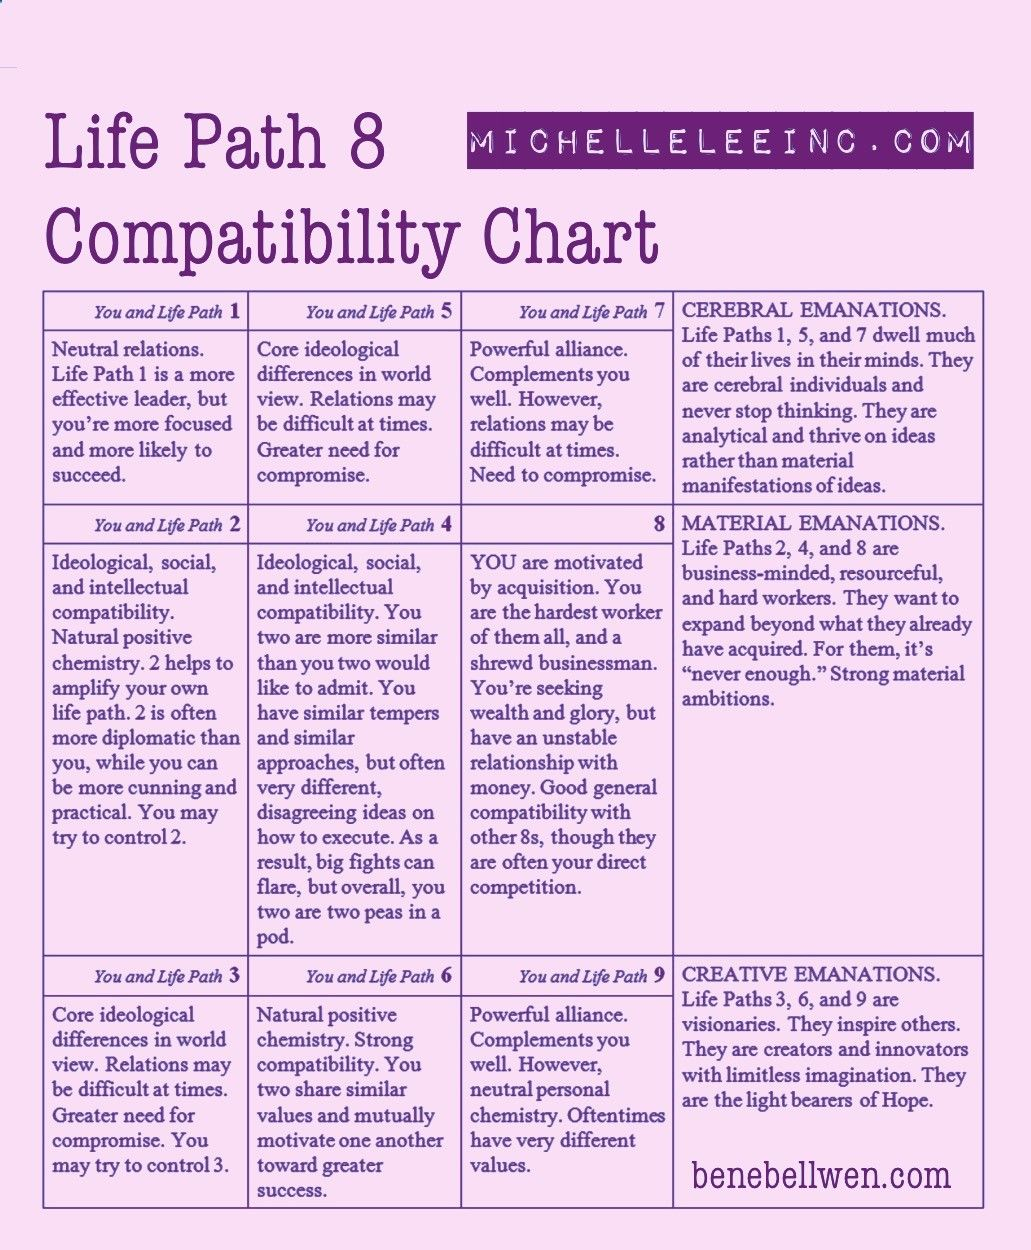 Numerology lifepath 8 love compatibility chart misc numerology lifepath 8 love compatibility chart nvjuhfo Image collections